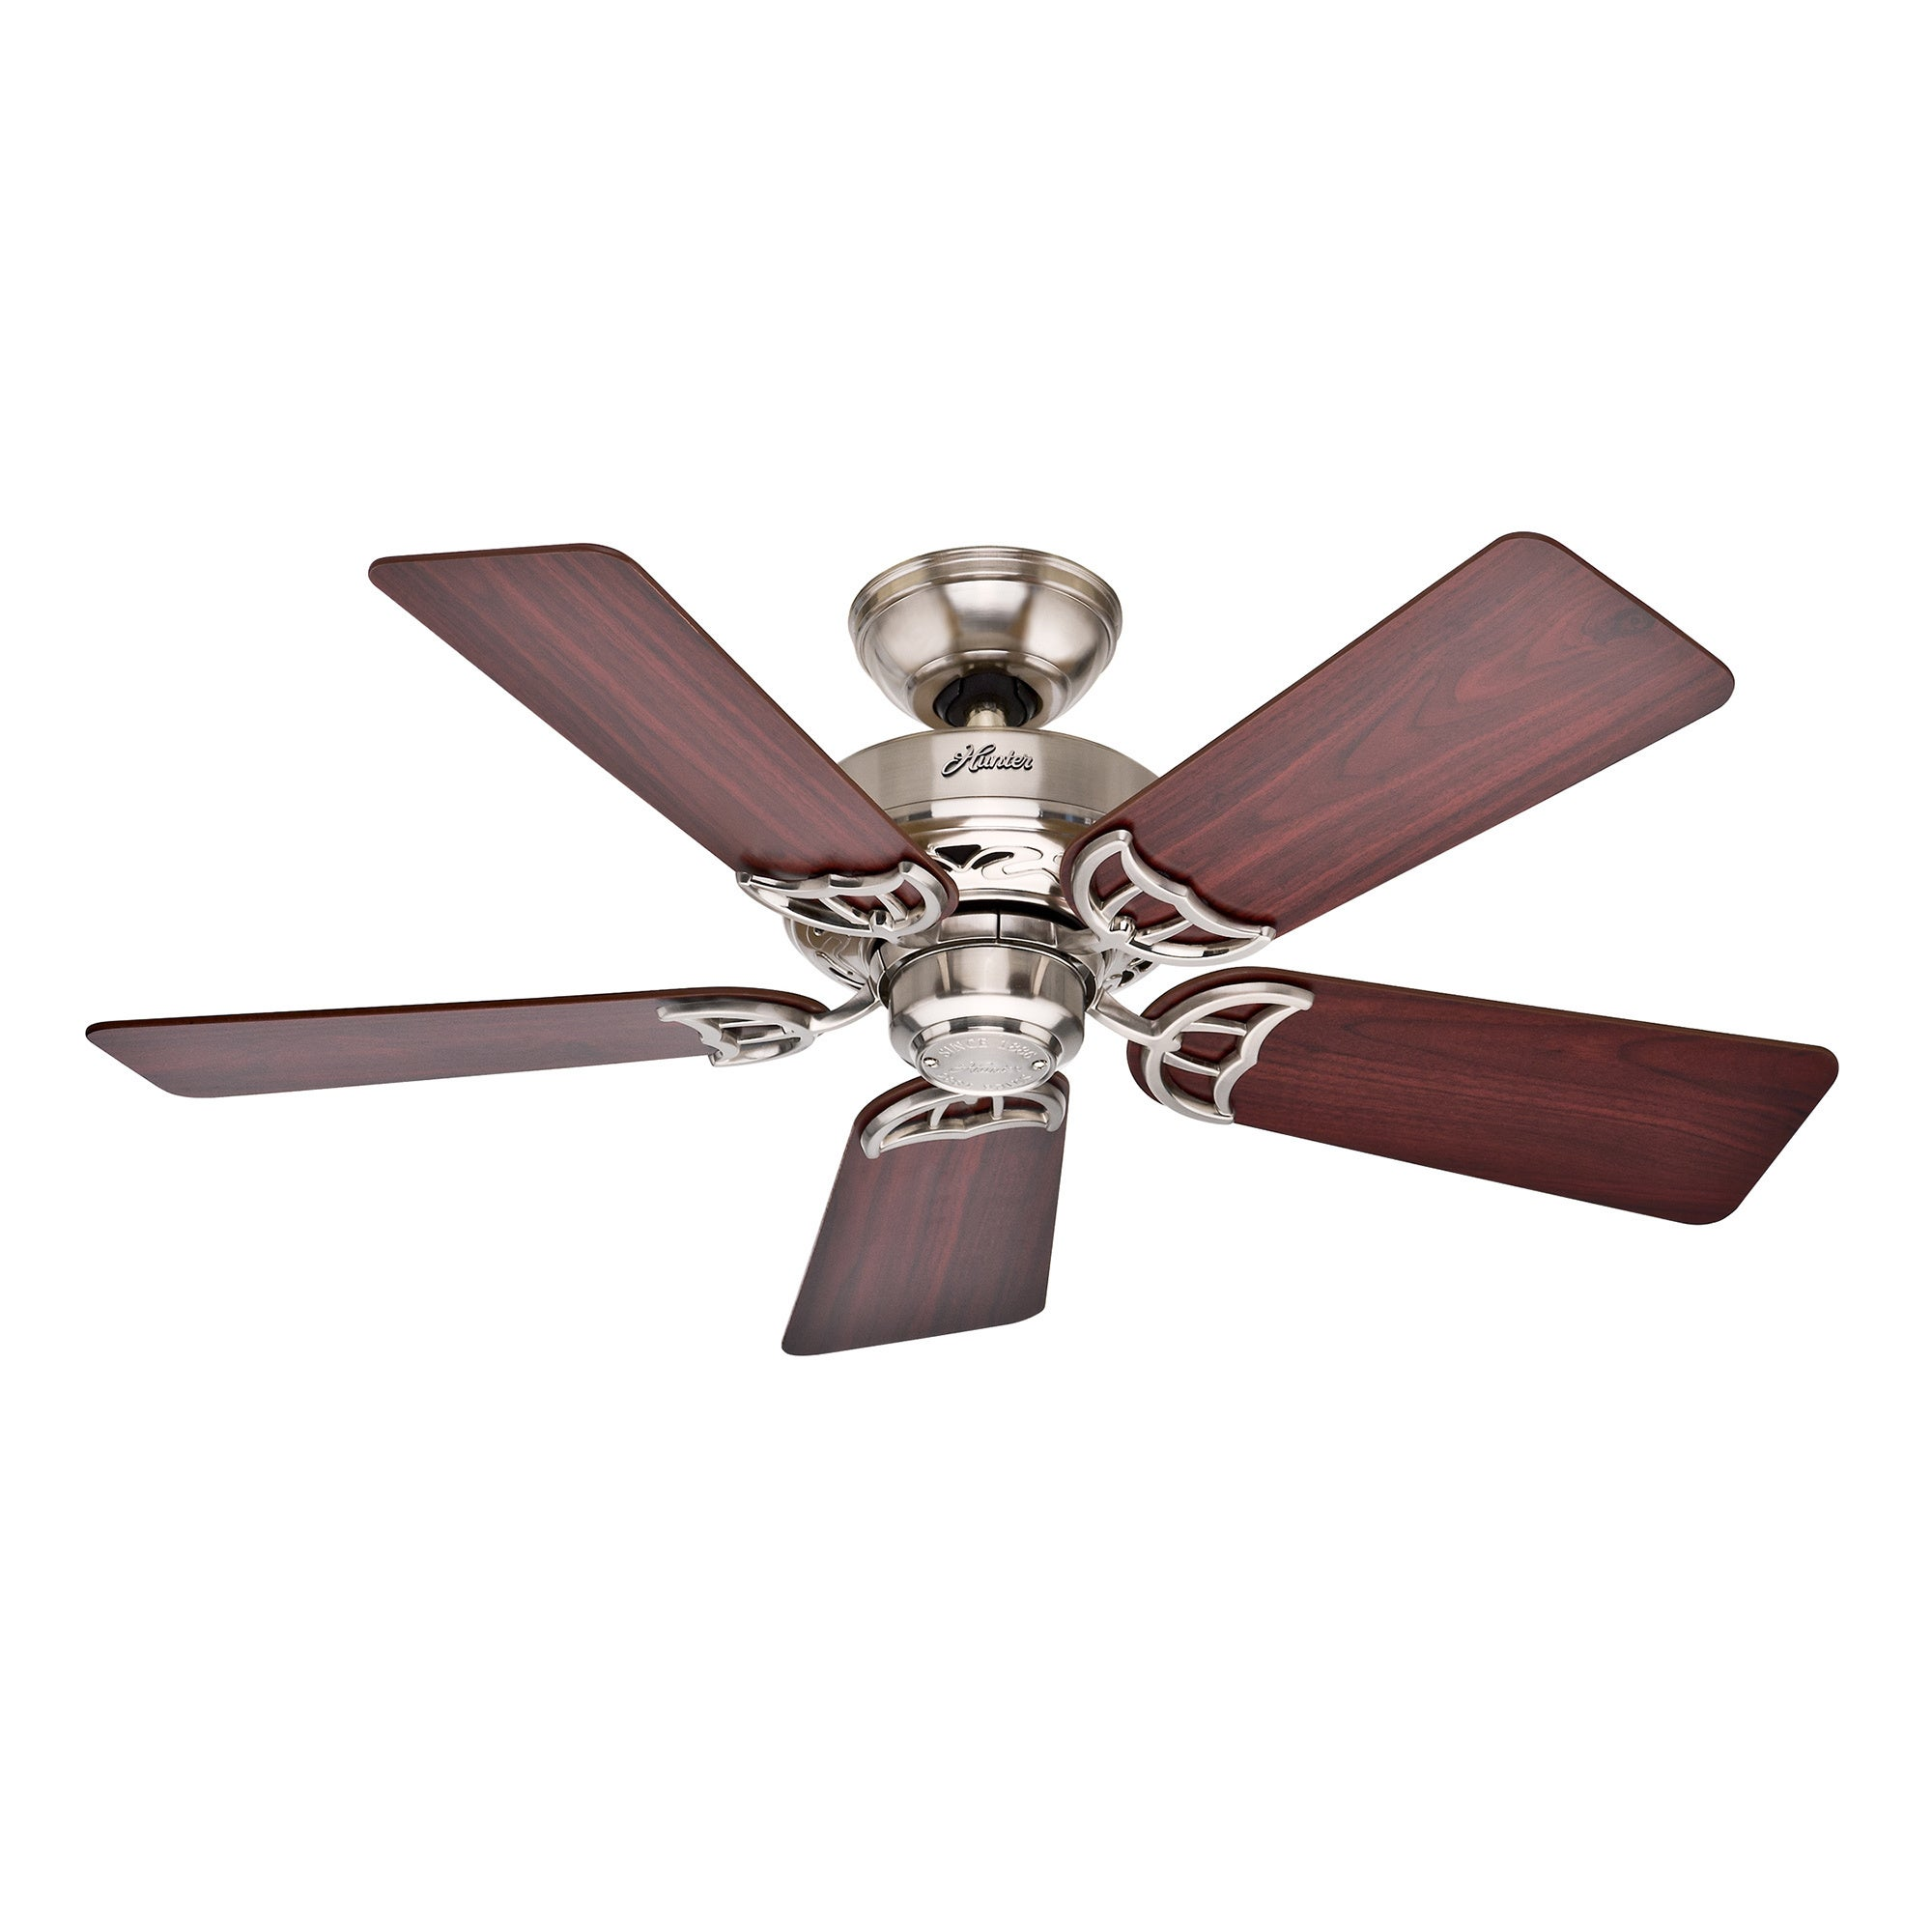 HUNTER FAN Hunter 'Hudson' 42-inch Brushed Nickel/ Cherry/ Maple Ceiling Fan at Sears.com